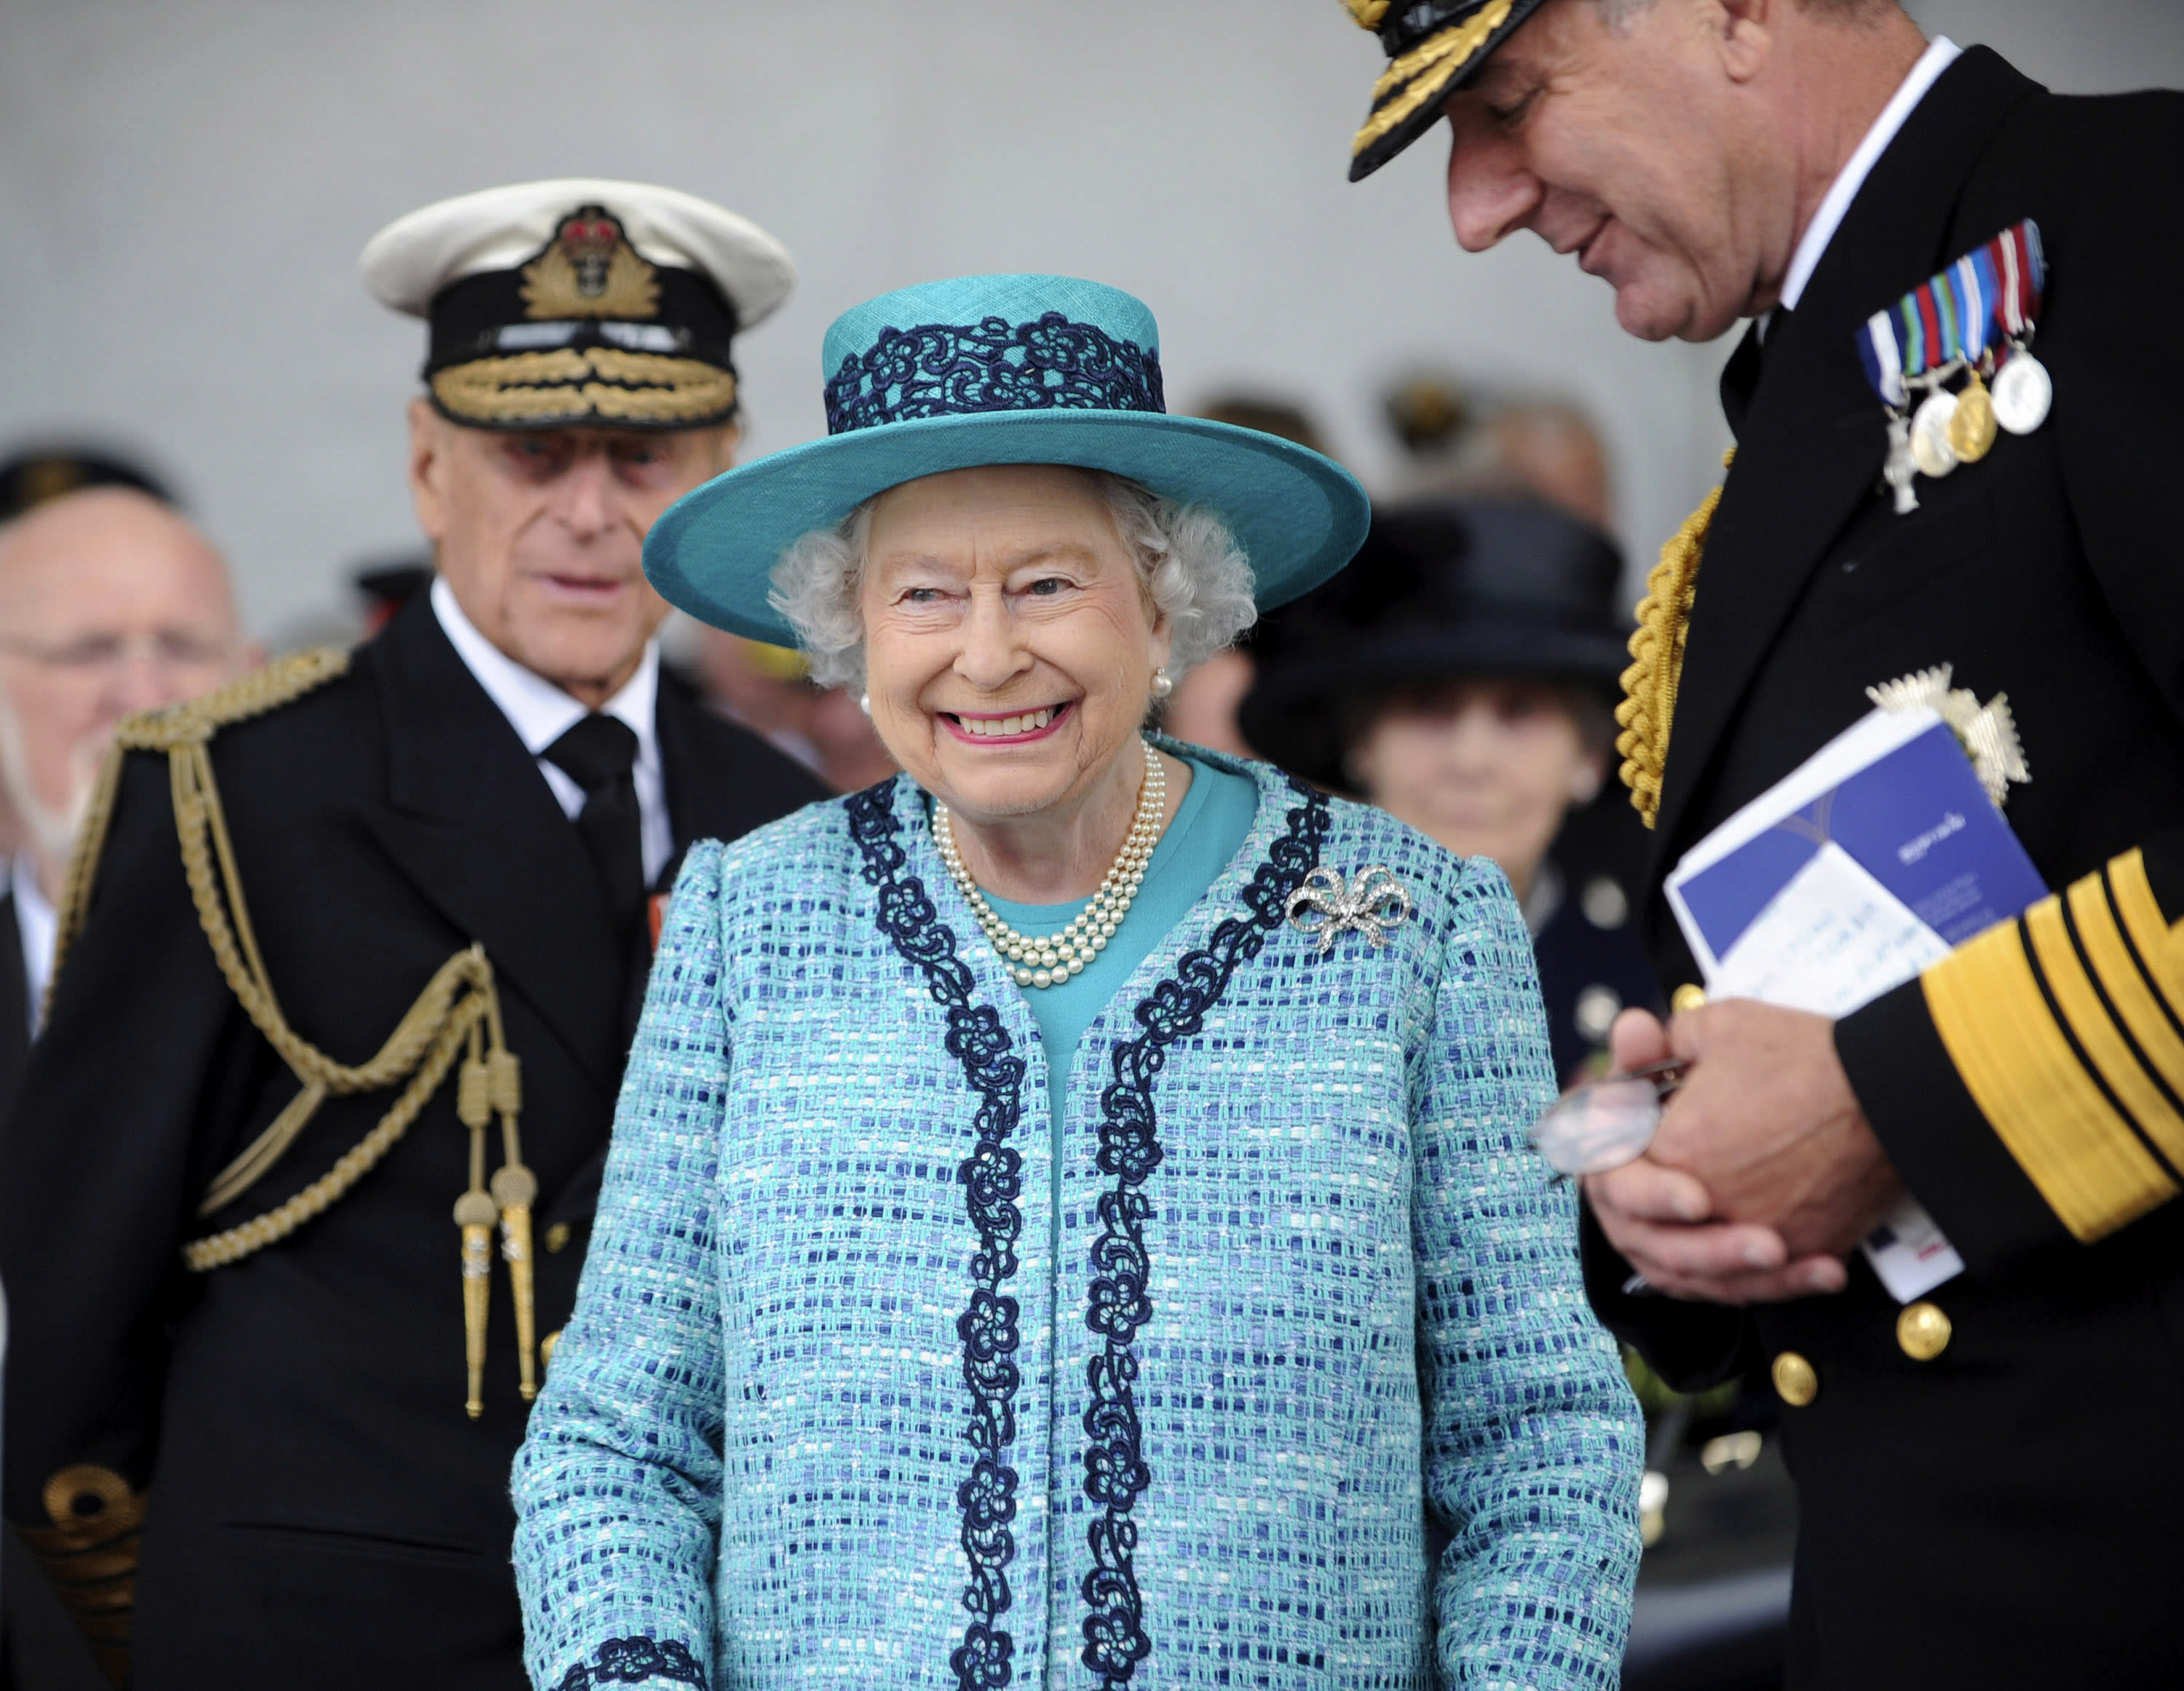 A Ministry of Defence handout picture shows Queen Elizabeth II and Prince Philip, The Duke of Edinburgh (L) at a ship-naming ceremony conducted at Rosyth Dockyard in Rosyth, Scotland on July 4, 2014 (AFP Photo/Thomas Tam McDonald)